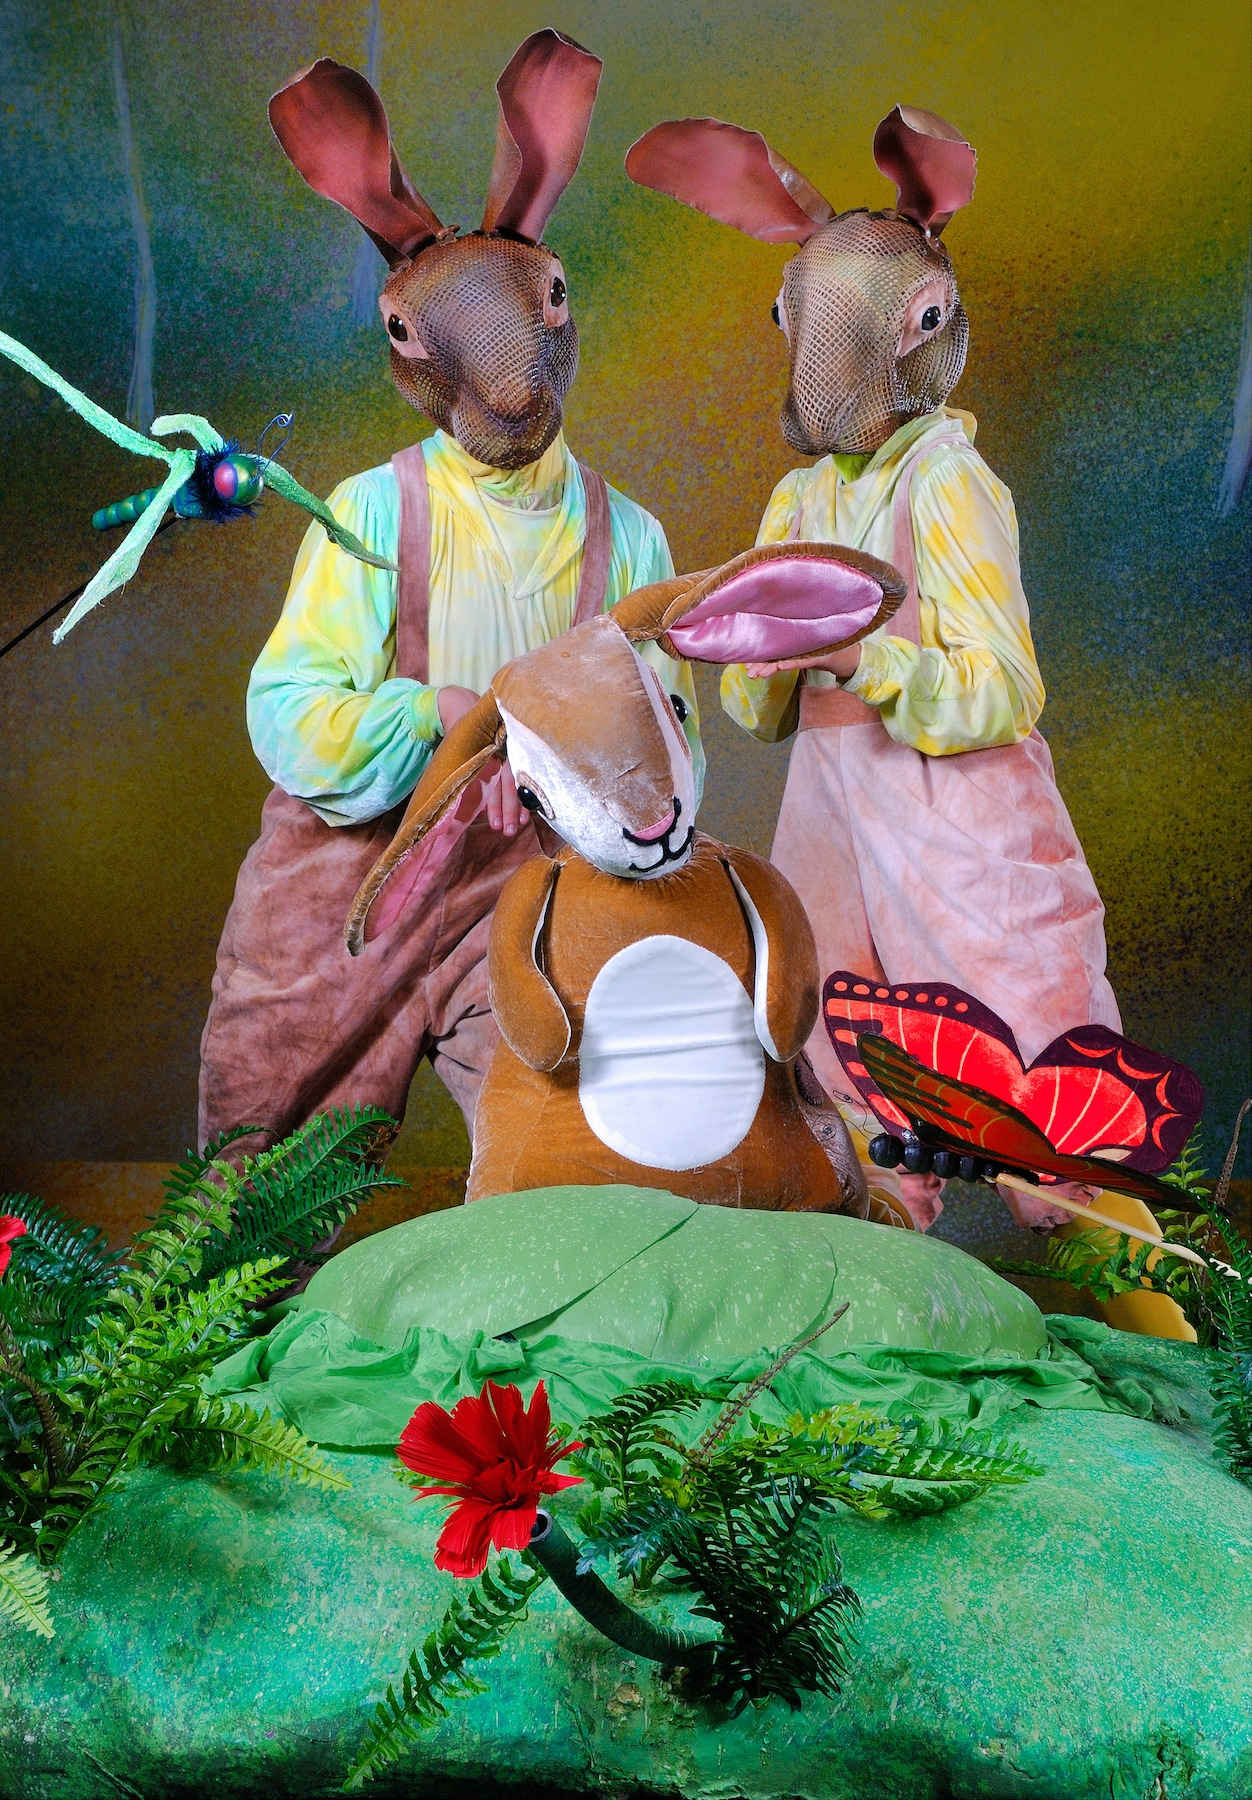 Upcoming Show The Velveteen Rabbit At The Brooklyn Center